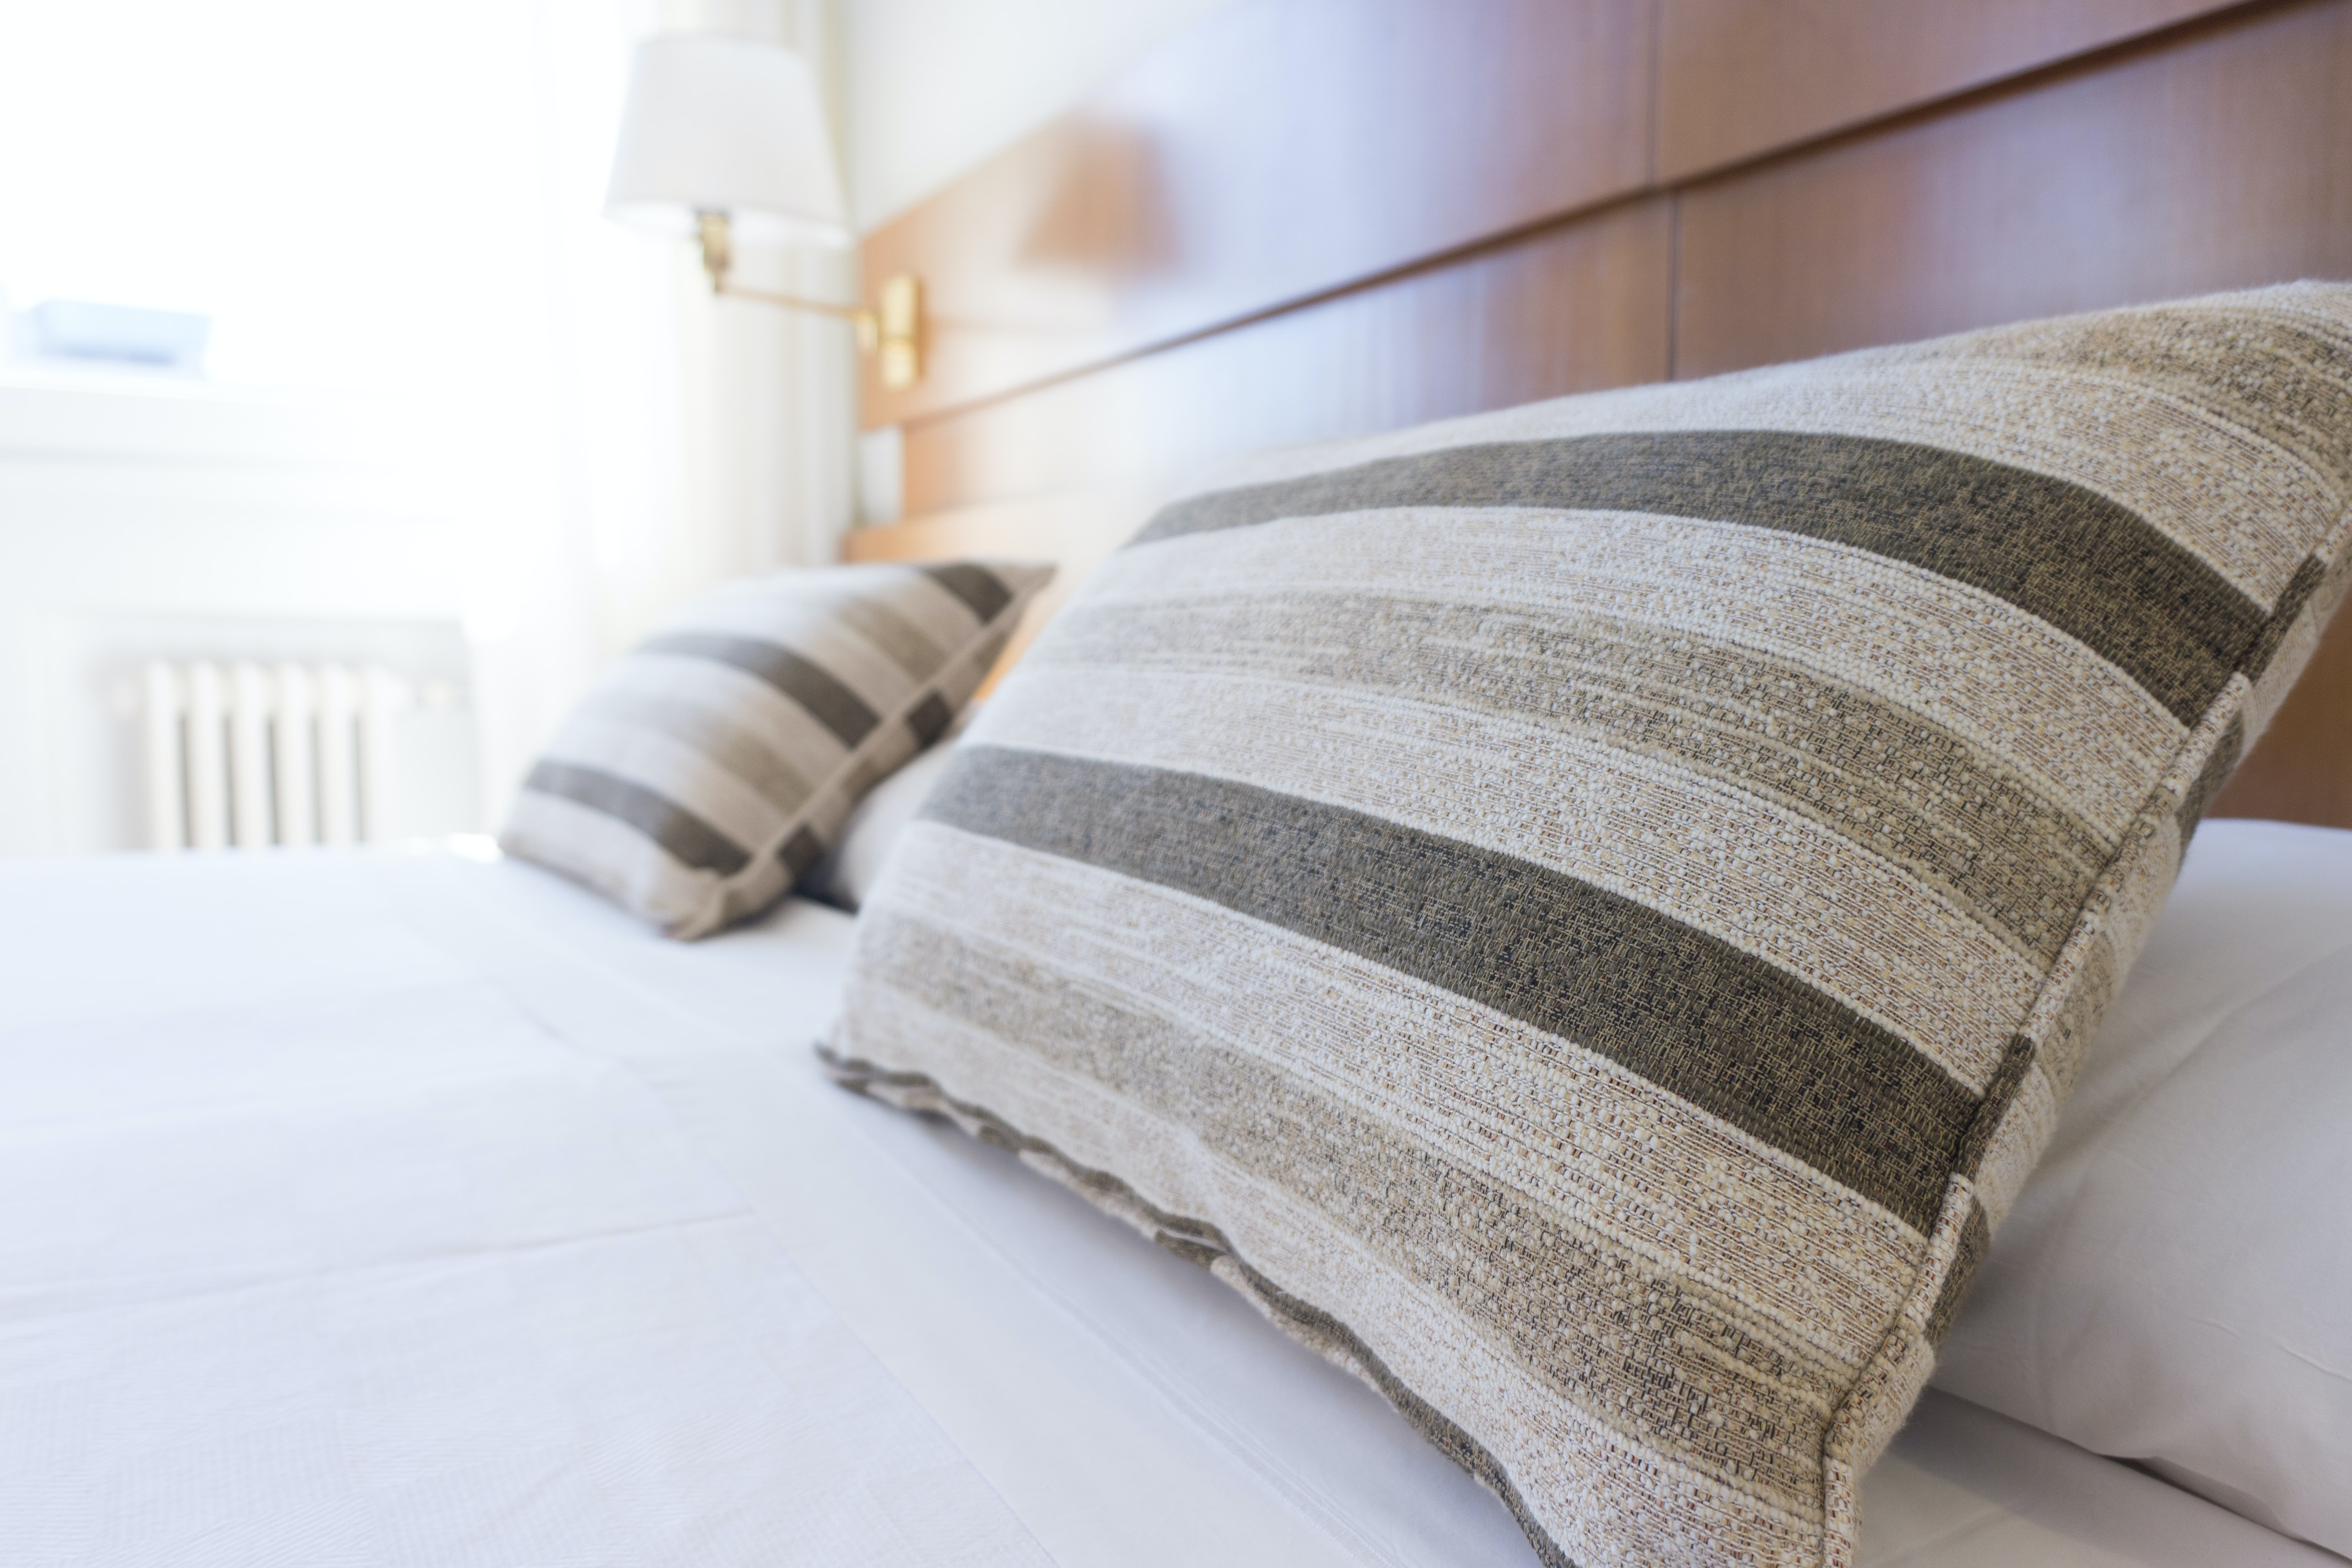 gray and black throw pillow on bed